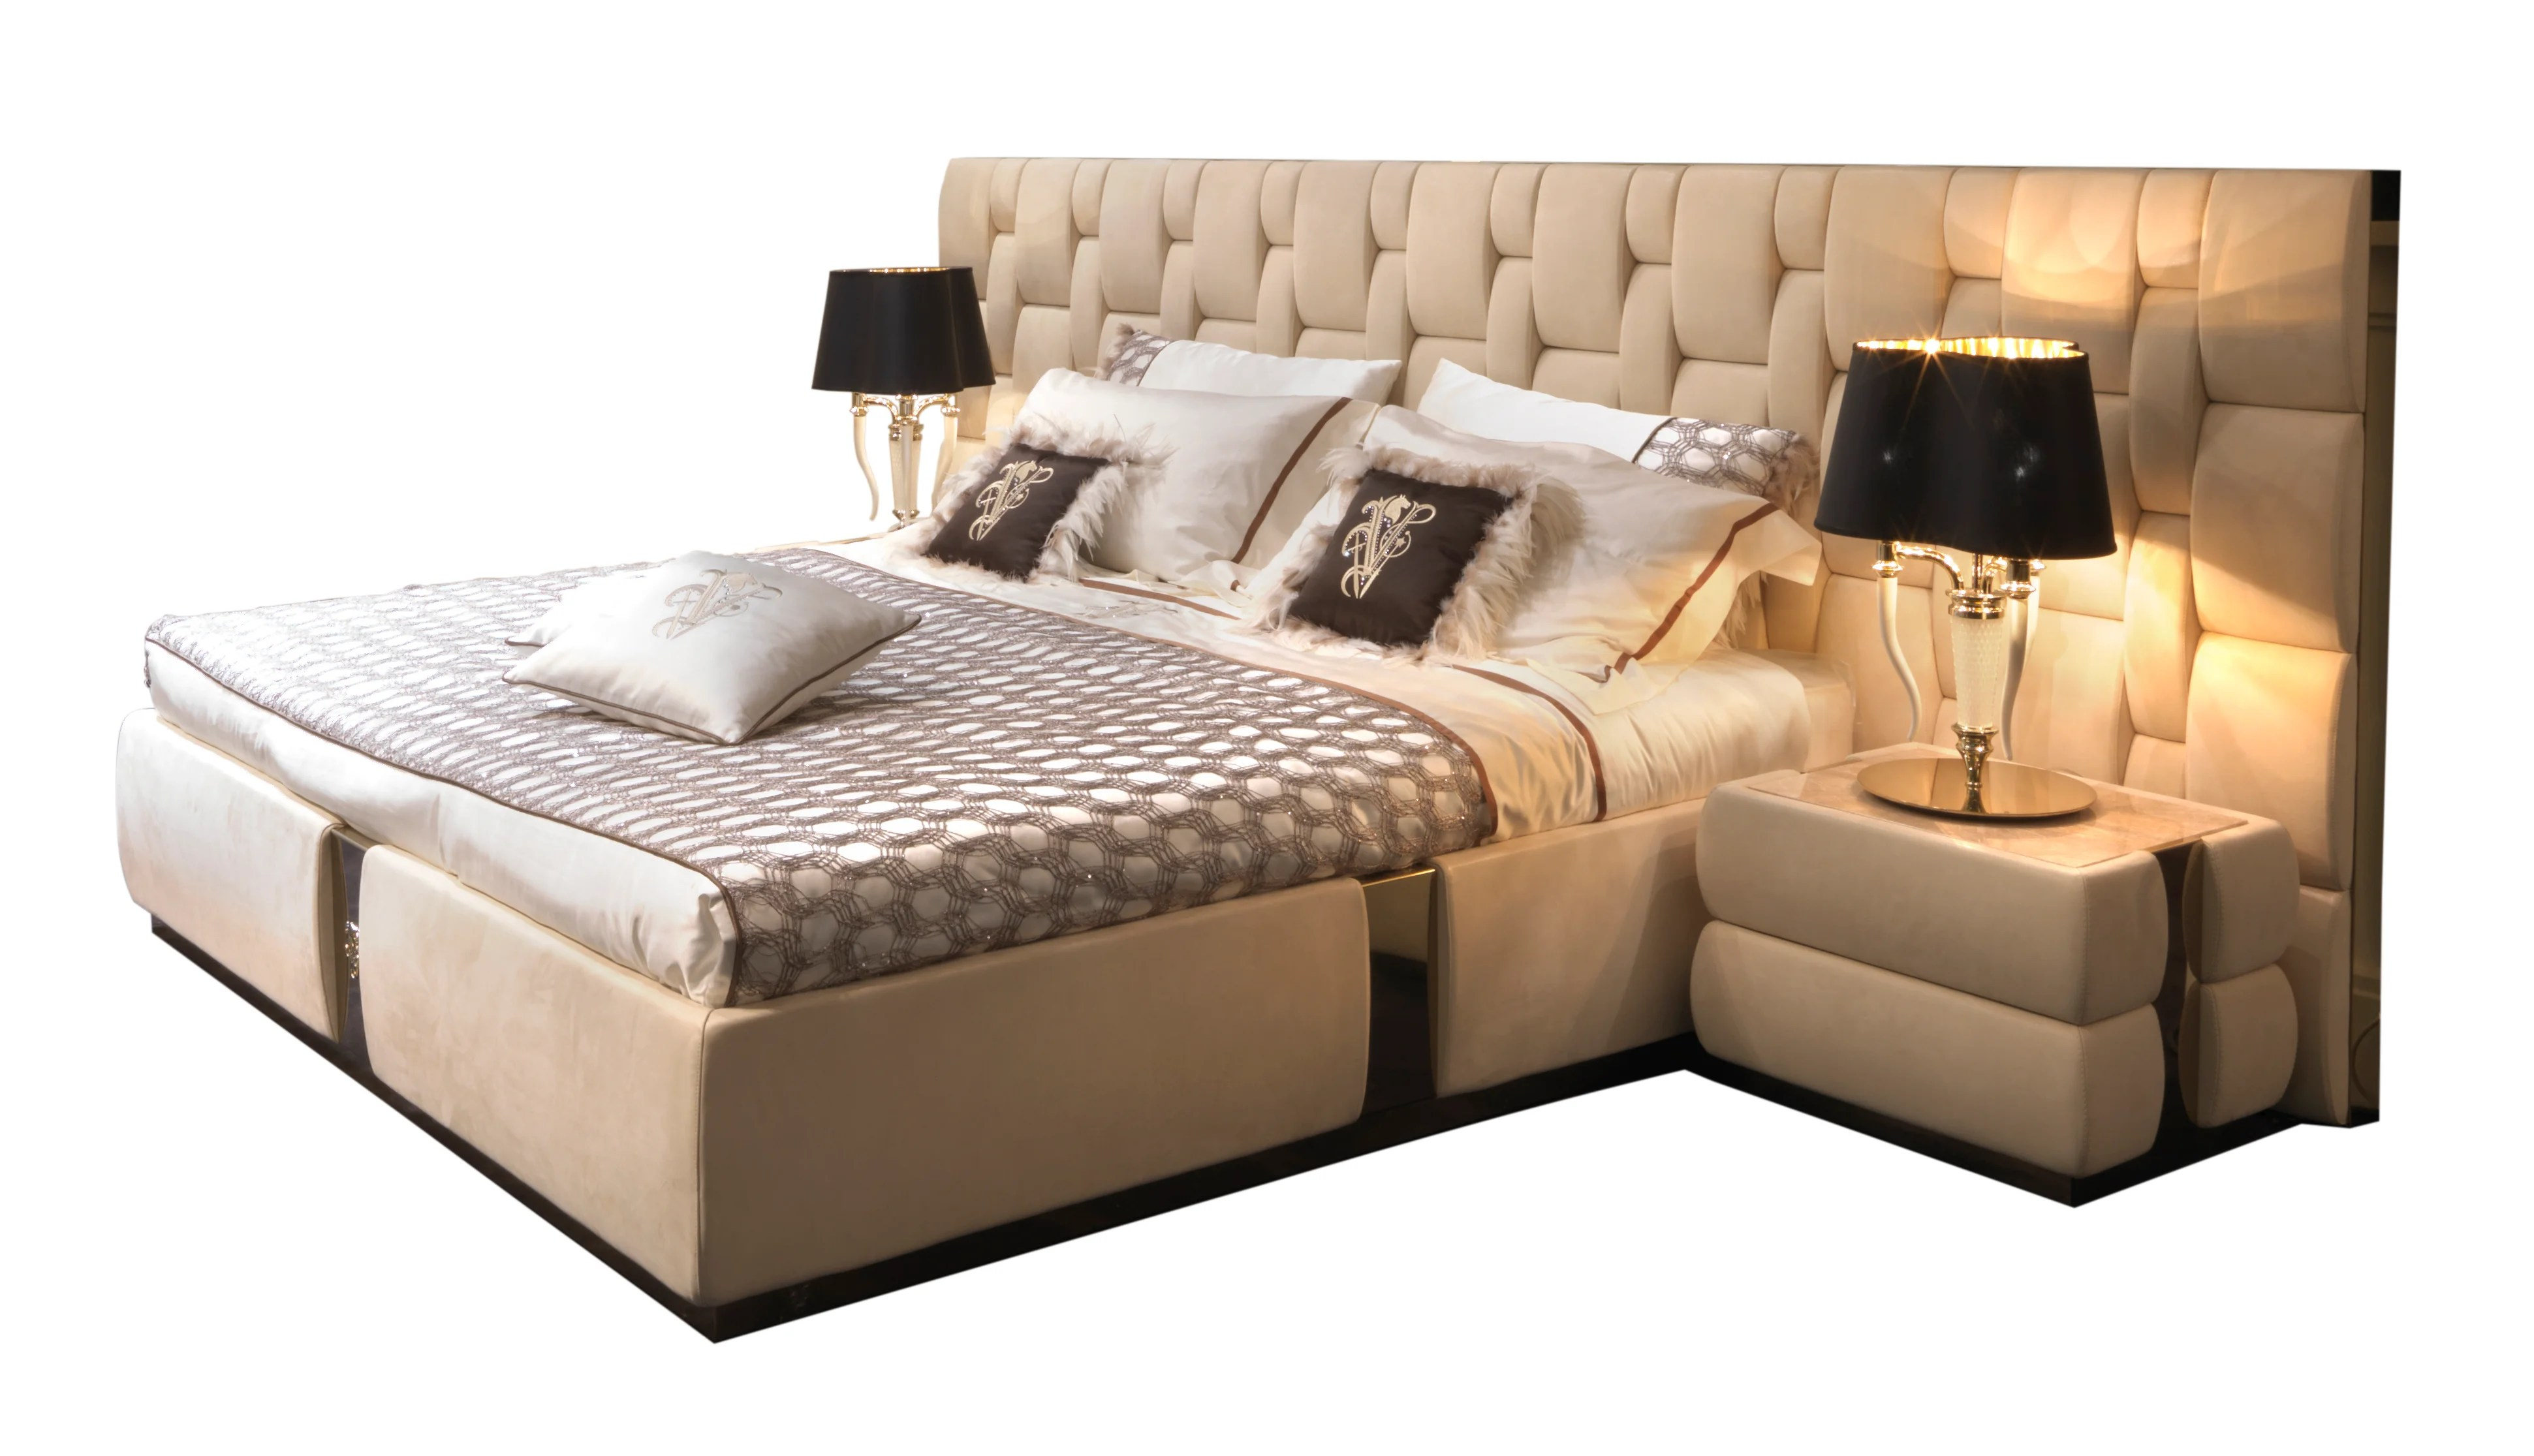 Visionnaire Release 2014 Bed Collection Elite Traveler